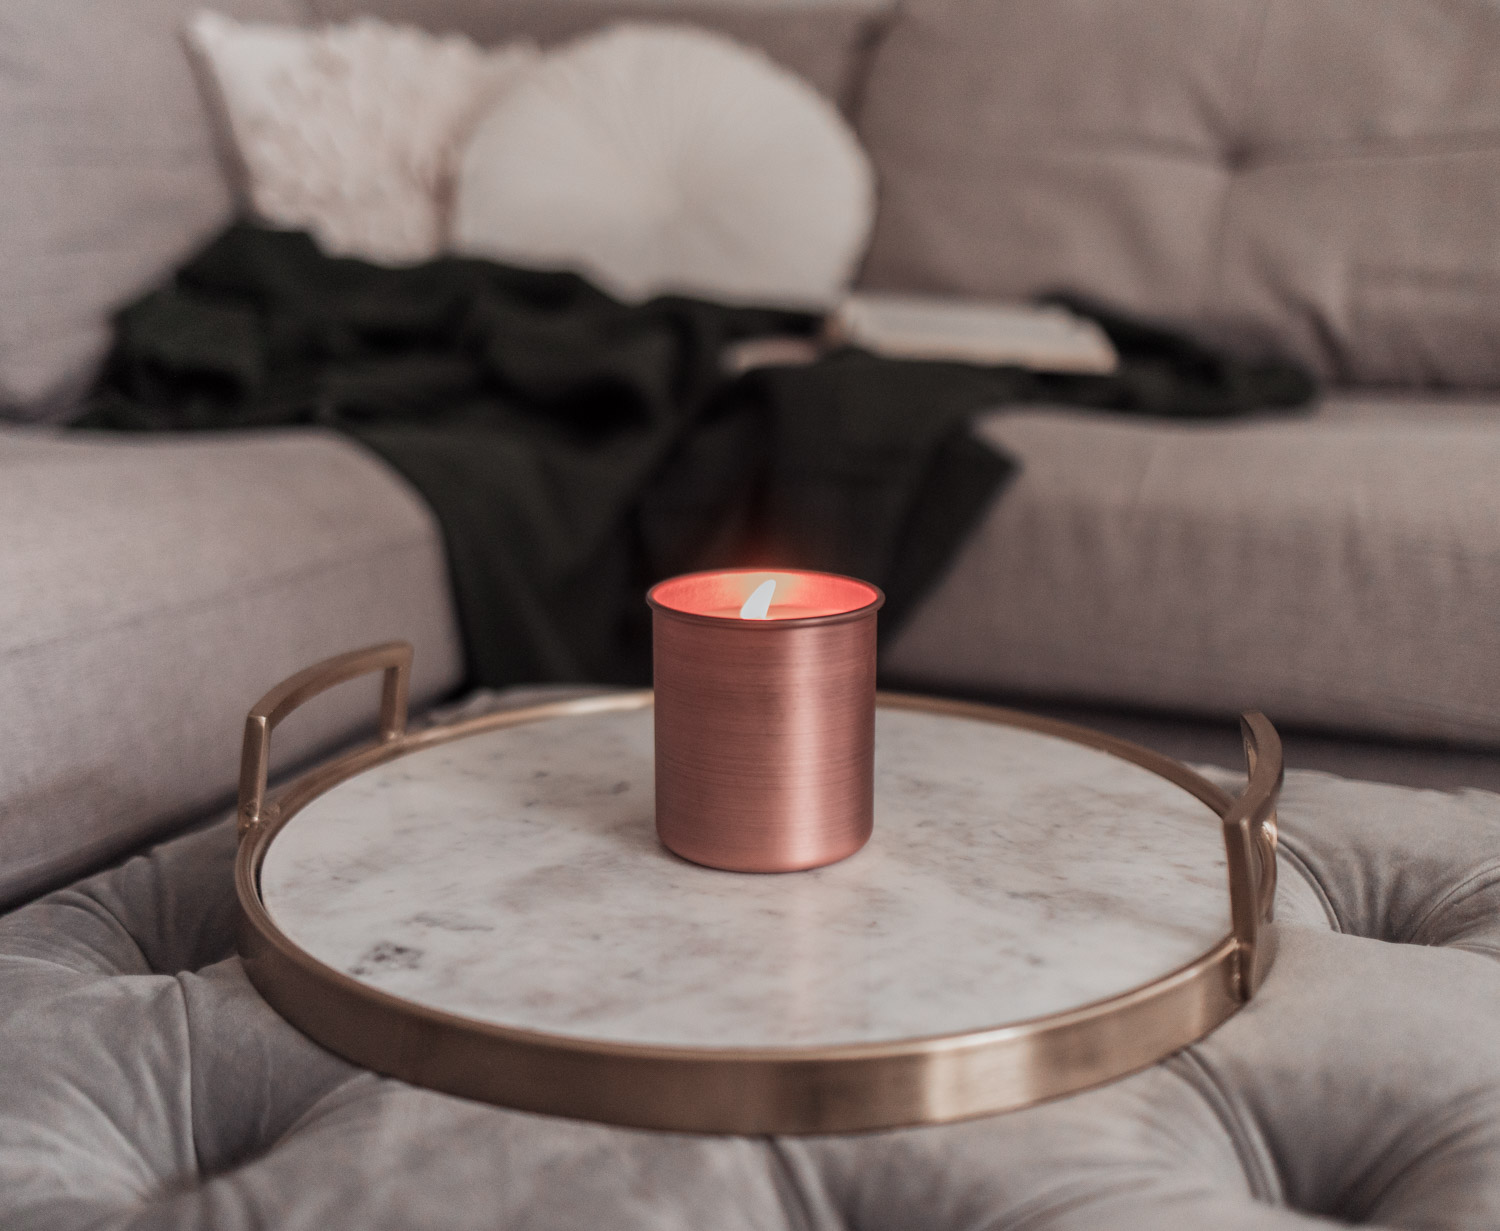 Feminine Fashion Blogger Elizabeth Hugen of Lizzie in Lace shares a peek into the FabFitFun Fall Box including the Arhaus Evergreen Candle